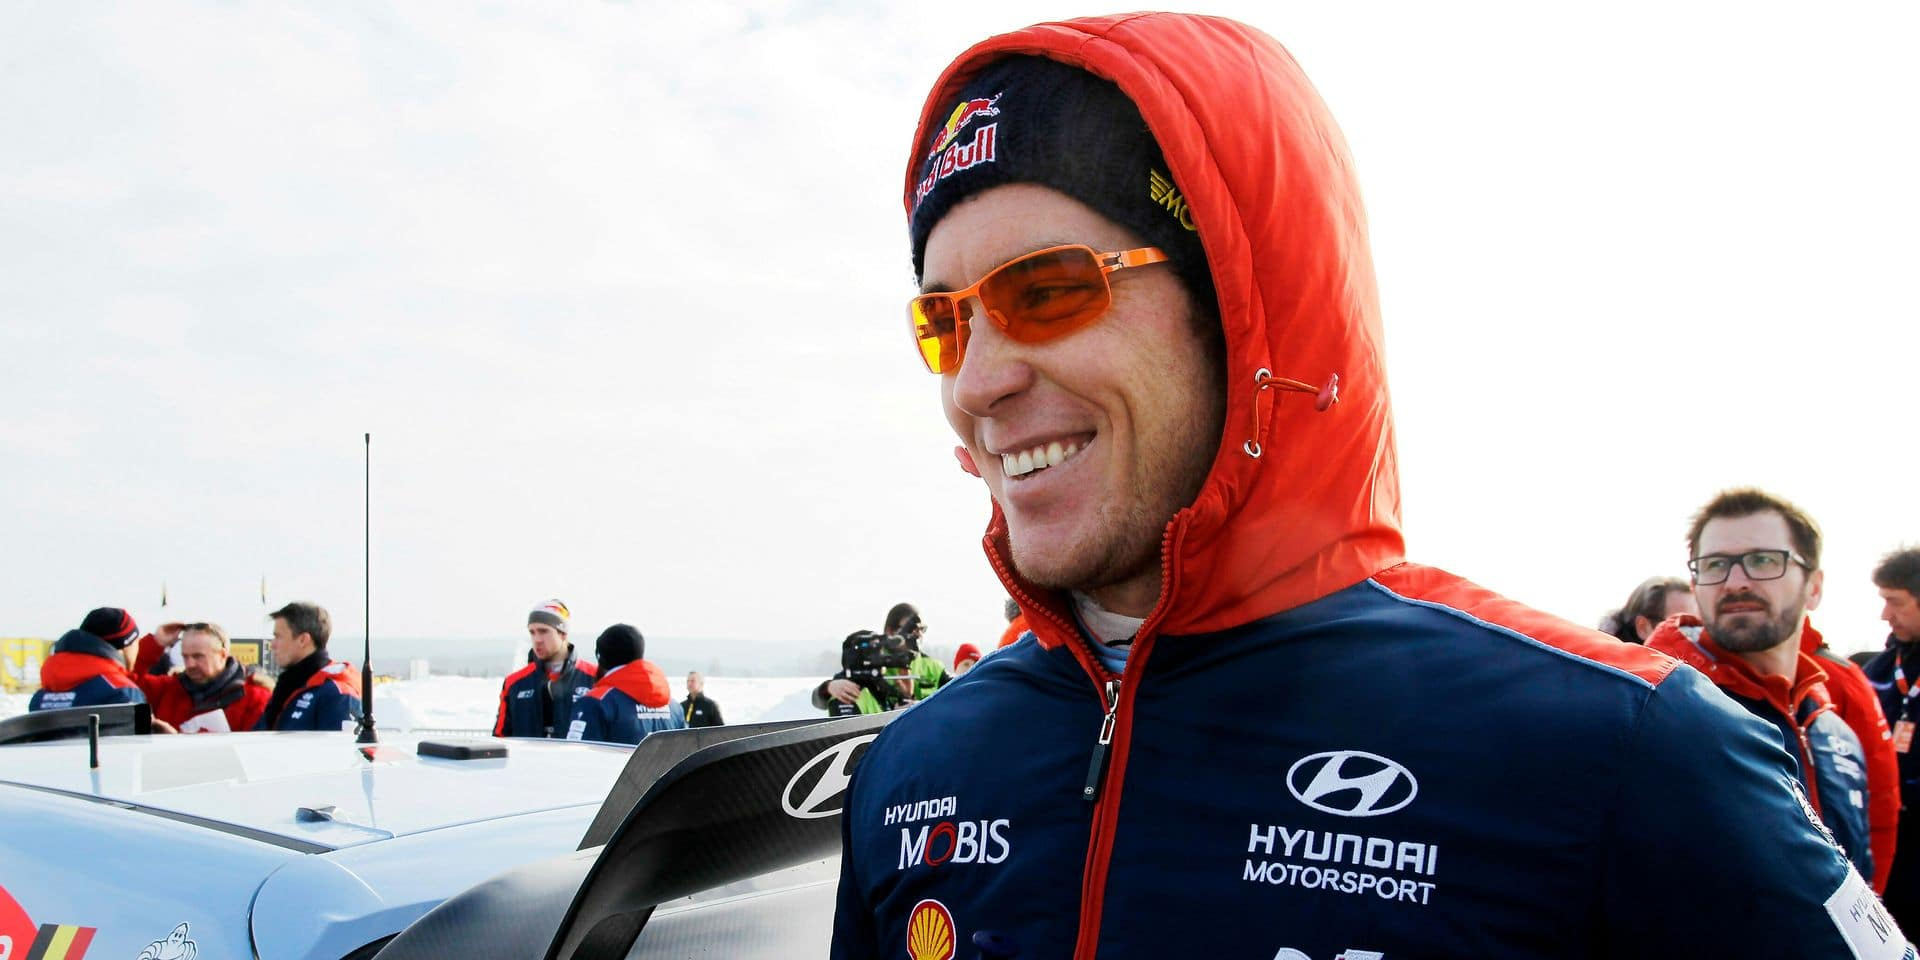 FILE - In this Saturday Feb. 17, 2018 file photo, Thierry Neuville of Belgium smiles during a stopover on day 3 of Rally Sweden 2018 as part of the World Rally Championship (WRC) in Torsby, Sweden. World champion Sebastien Ogier won the season-opening Monte Carlo rally on Sunday Jan. 27, 2019, beating main rival Thierry Neuville by just 2.2 seconds in the race's closest ever finish (Micke Fransson/TT via AP, File)